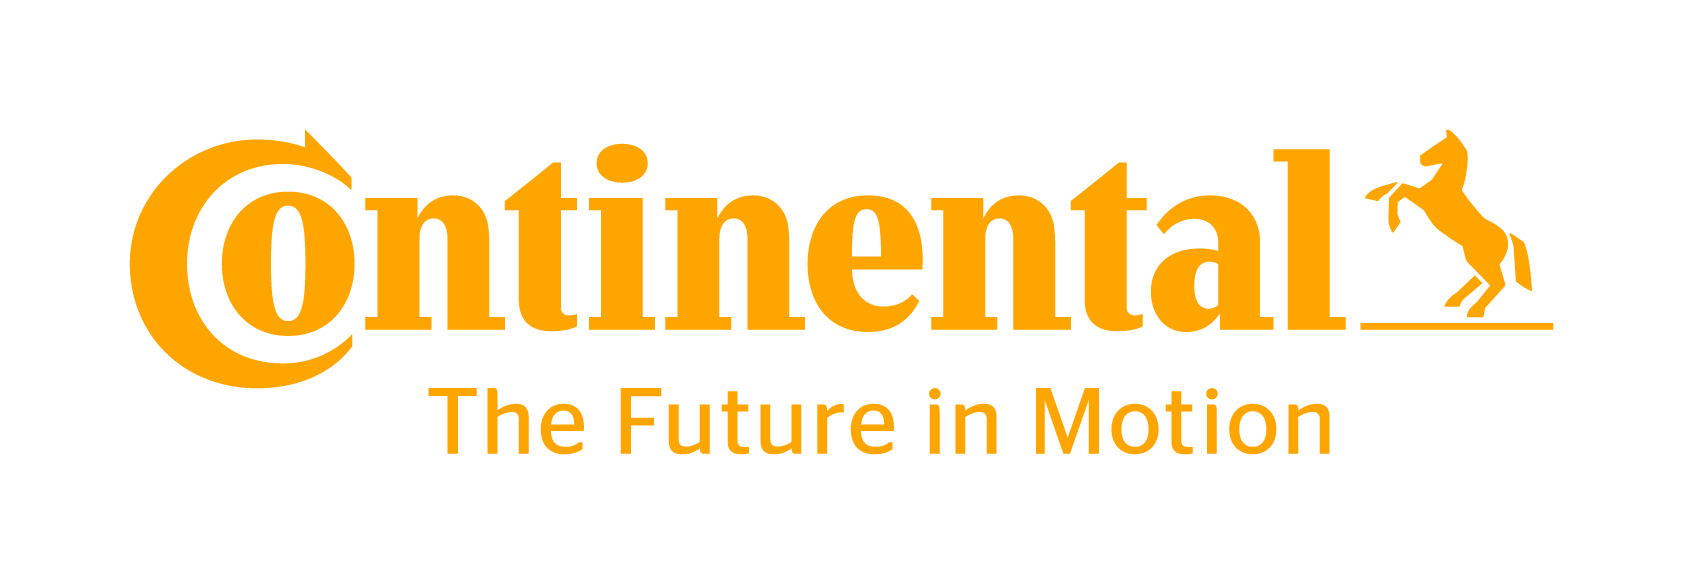 continental_logo_tagline_yellow_srgb_png-data